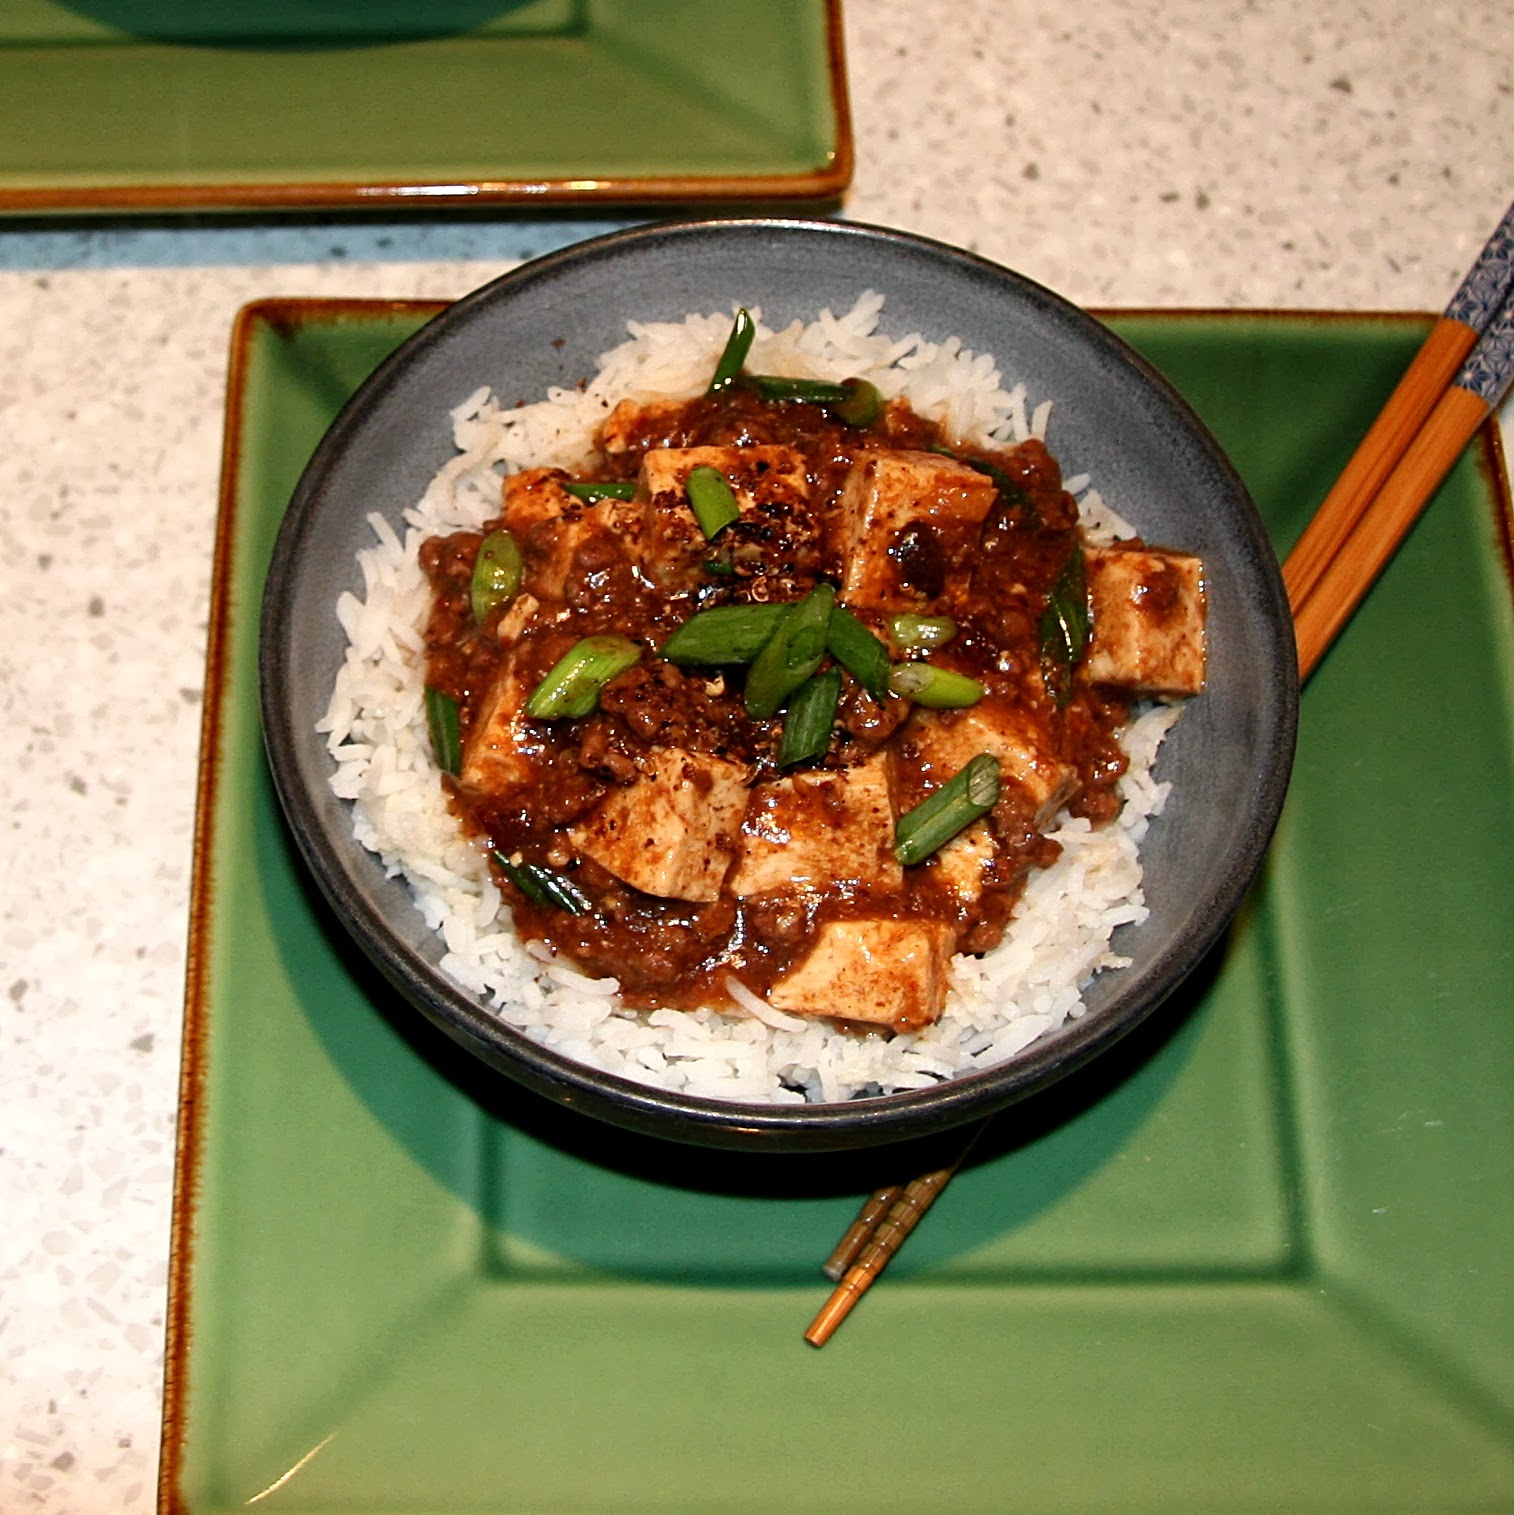 Szechuan Kitchen: 37 Cooks: Spicy Tofu With Beef And Szechuan Peppercorns